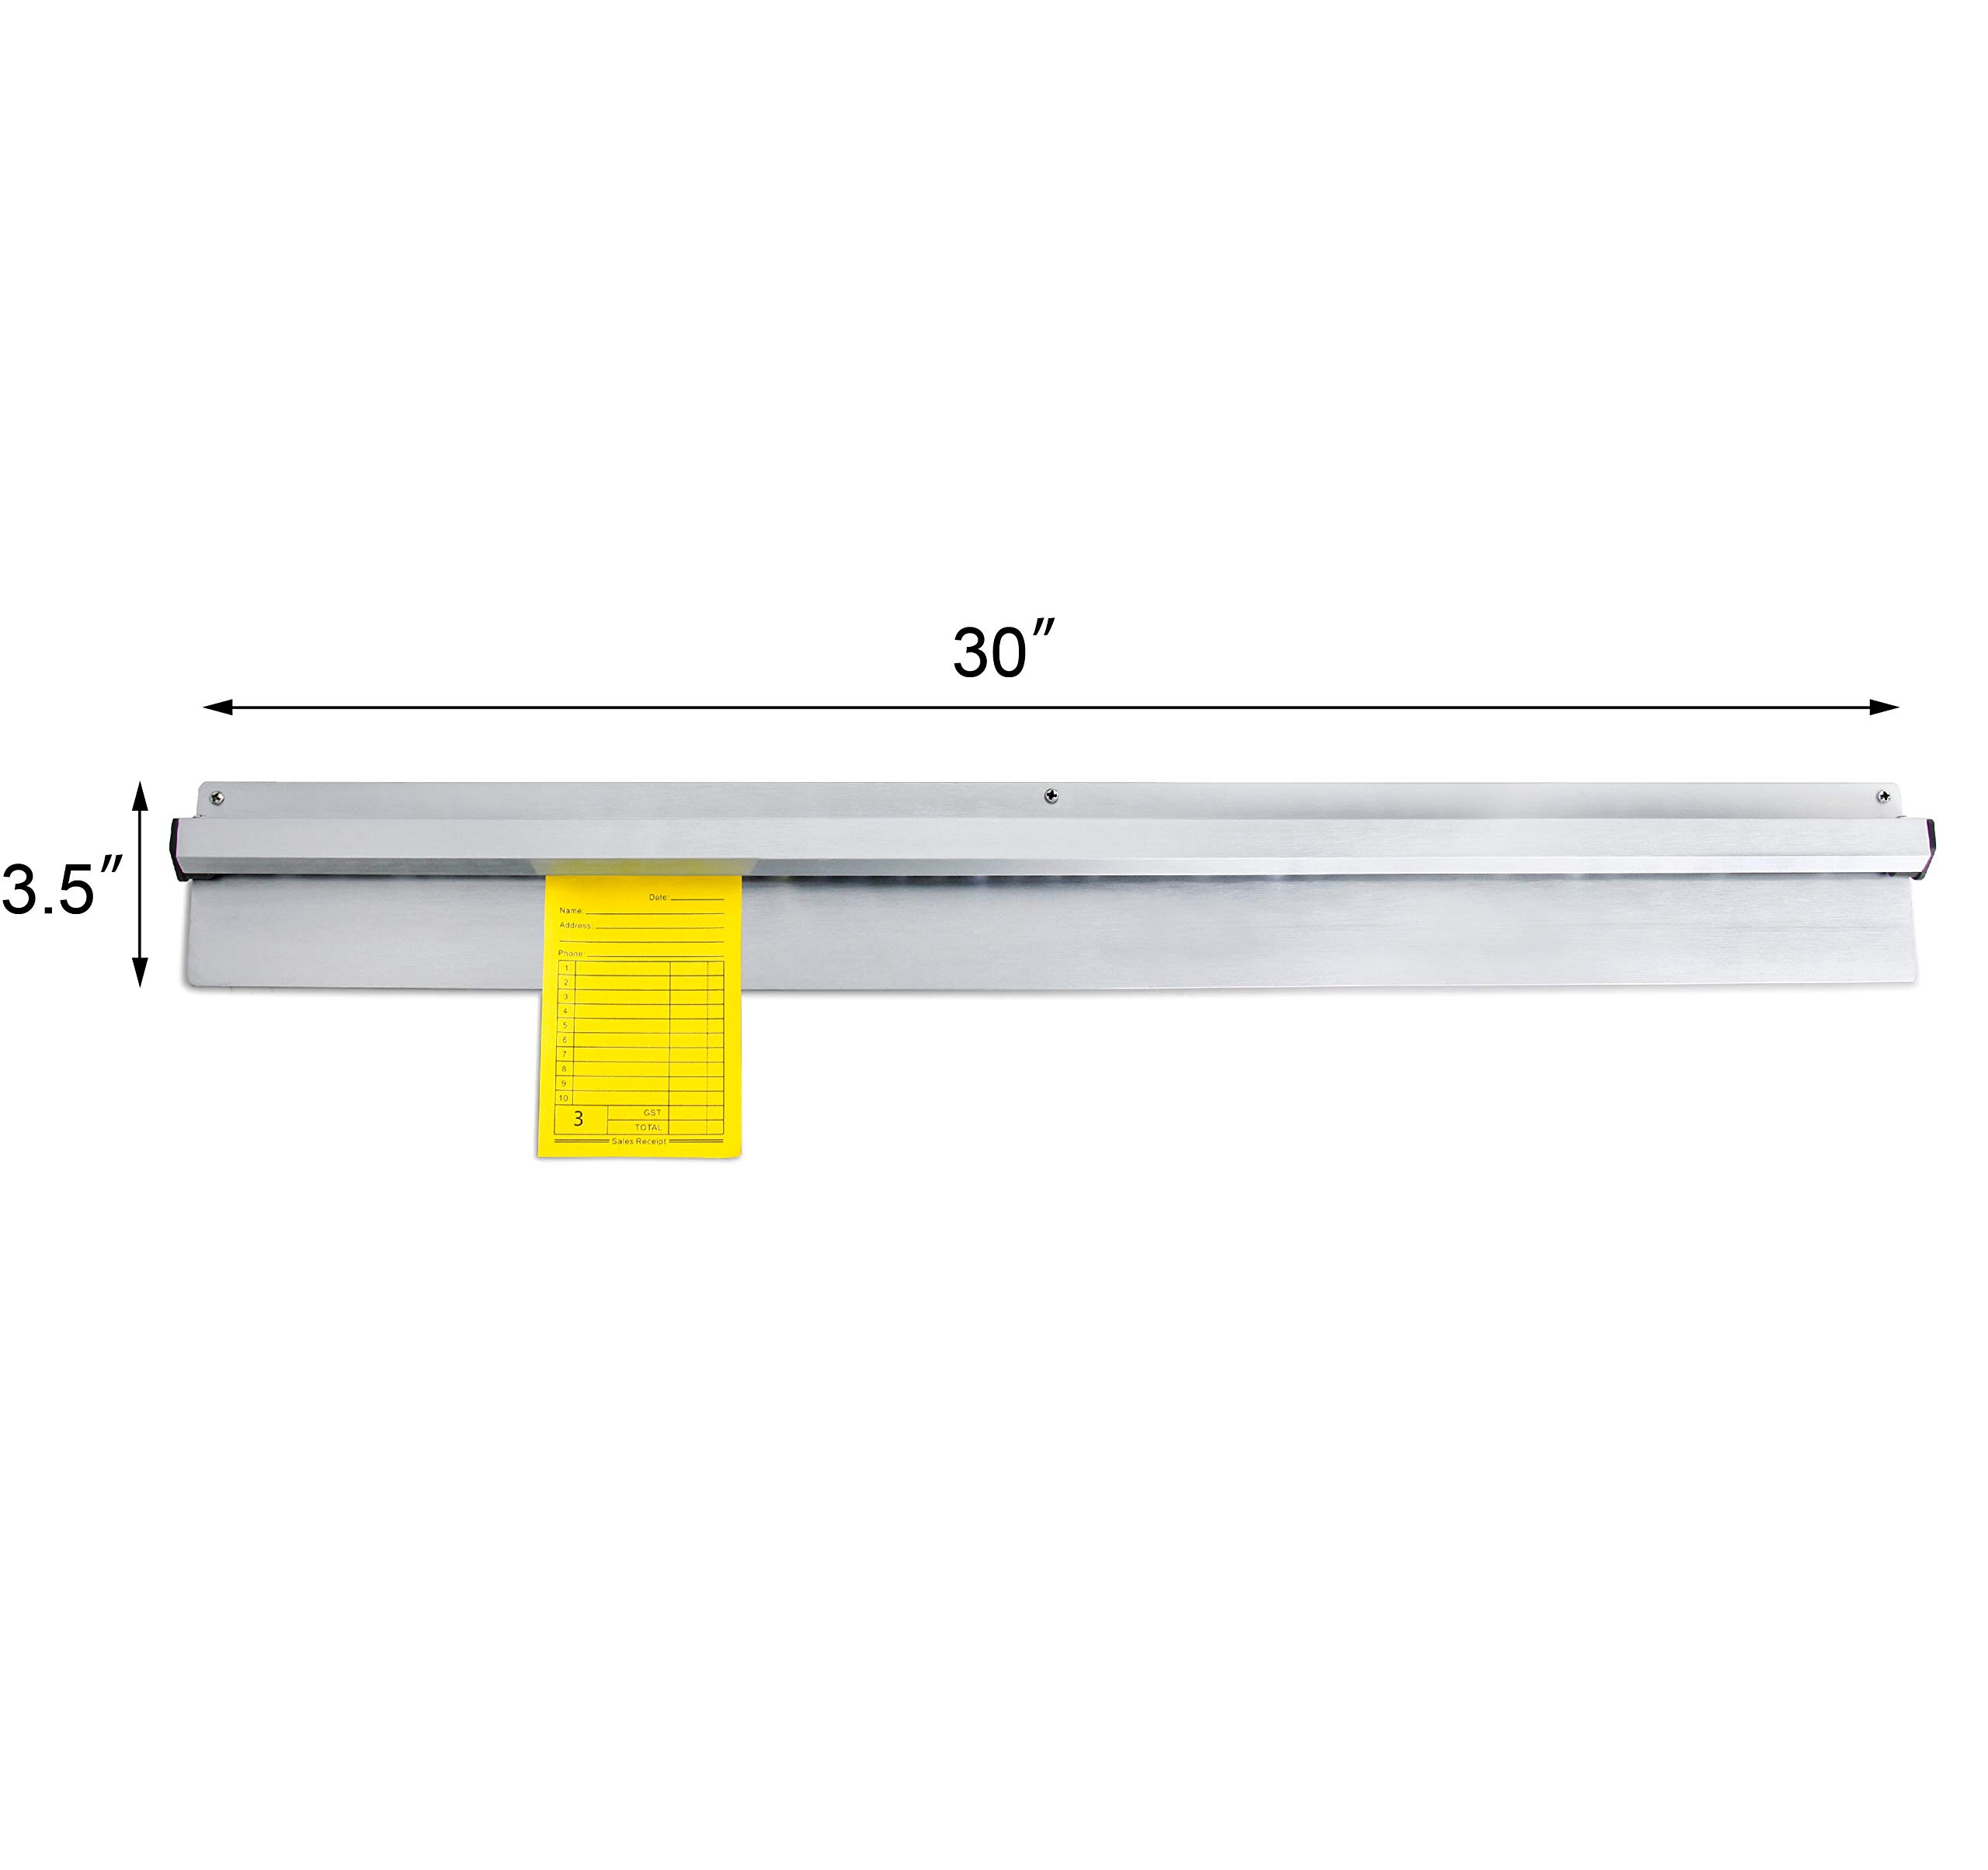 New Star Foodservice 23893 Anodized Aluminum Slide Check Rack, 30-Inch, Silver by New Star Foodservice